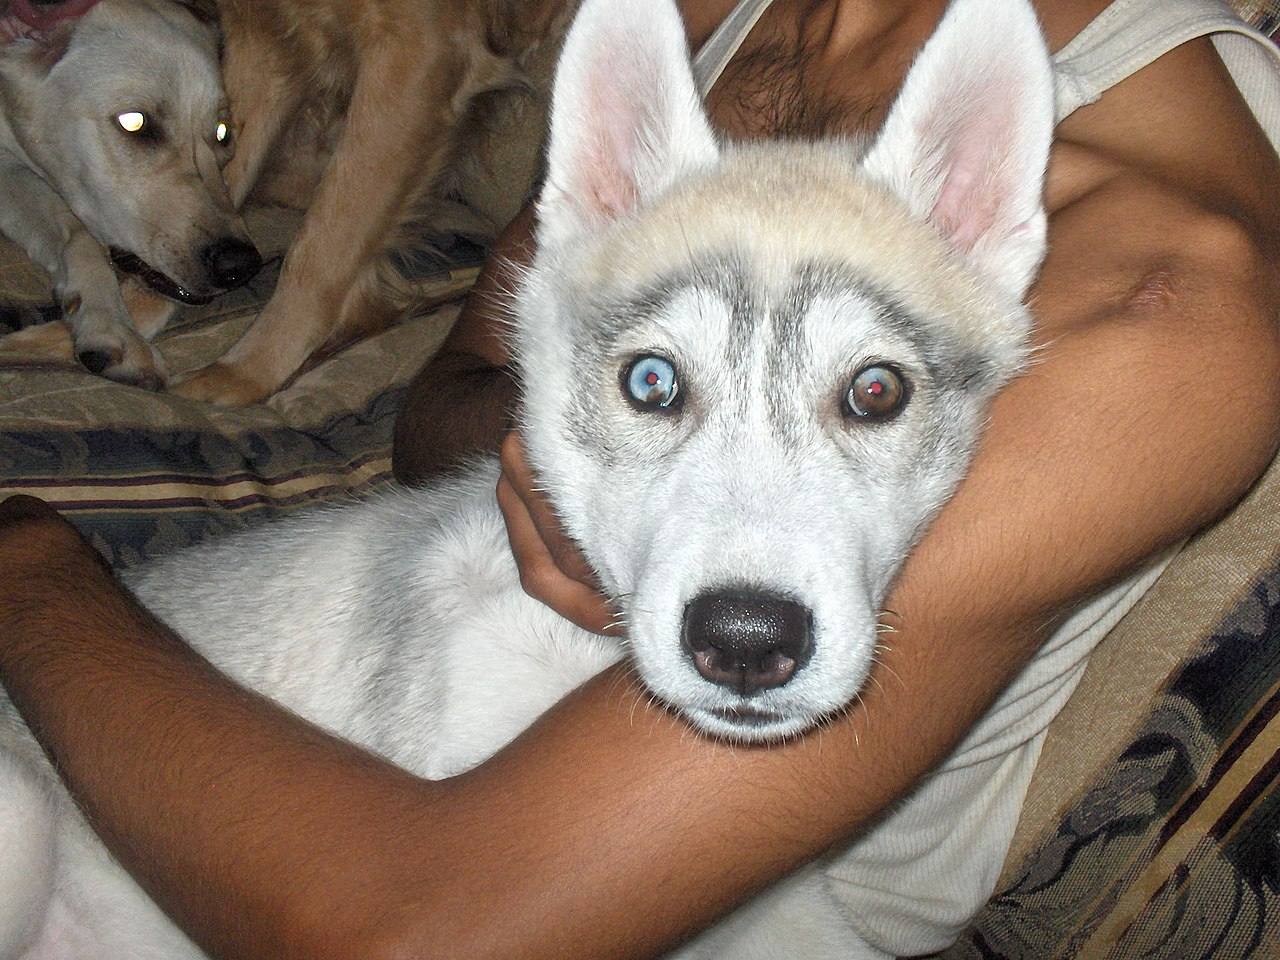 File:Part-colored husky puppy eyes.jpg - Wikimedia Commons